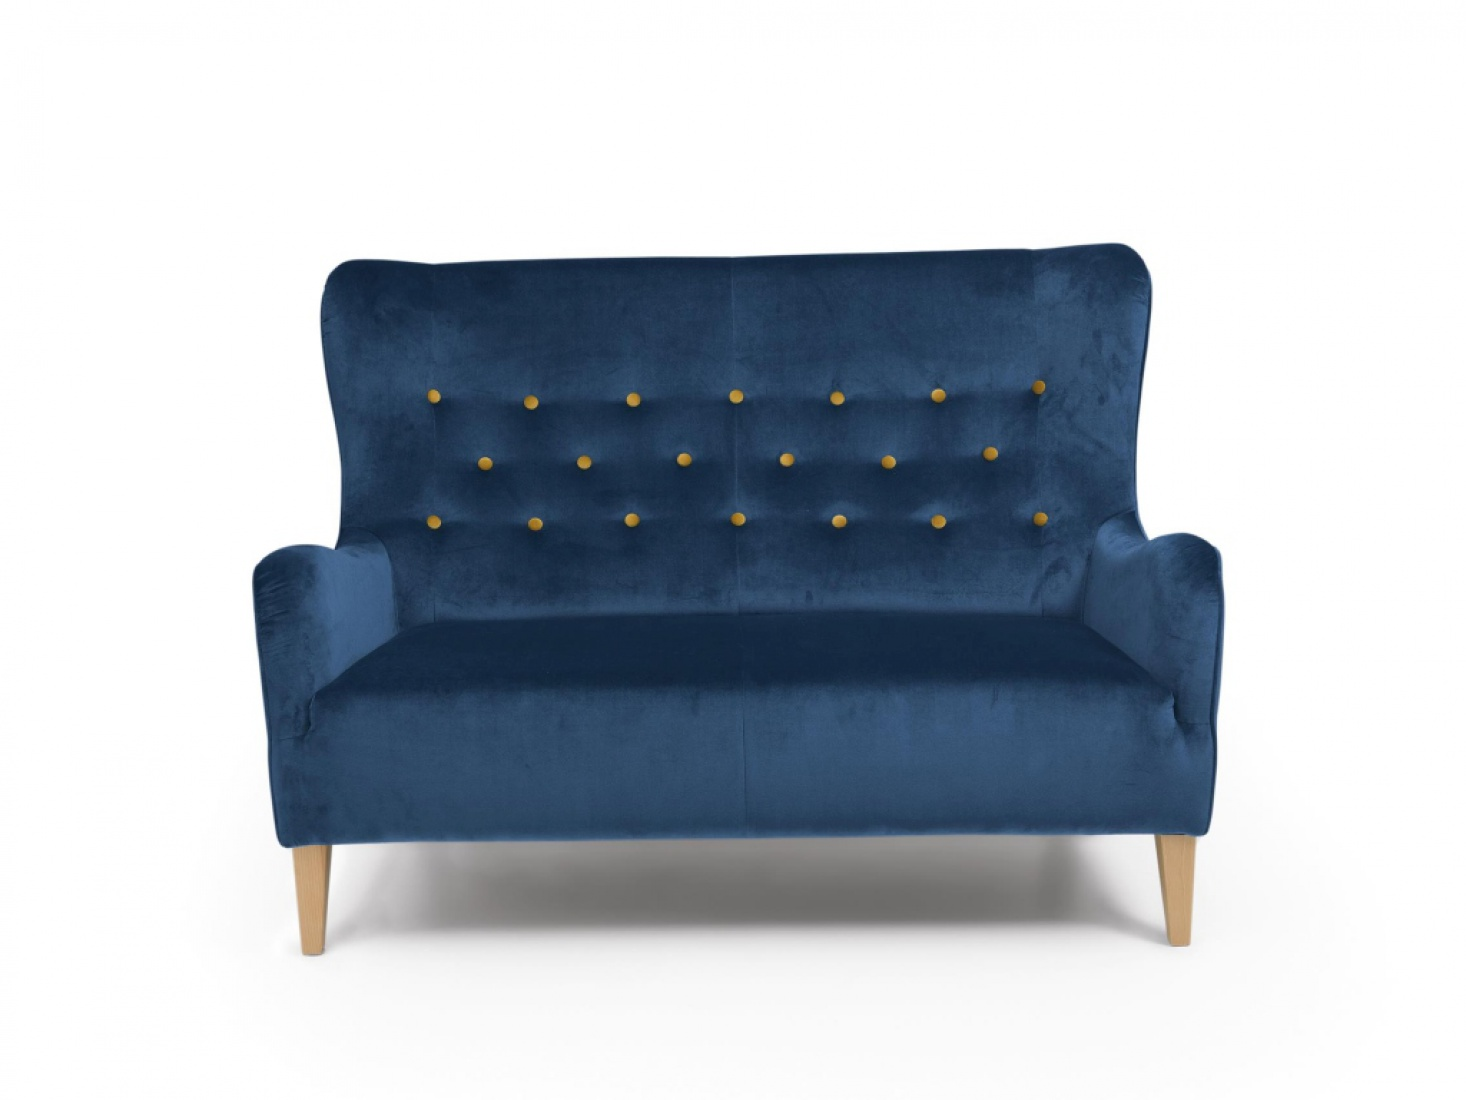 sofa s 2 medina samtvelours blau mit gelben kn pfen kaufen bei m bel lux. Black Bedroom Furniture Sets. Home Design Ideas